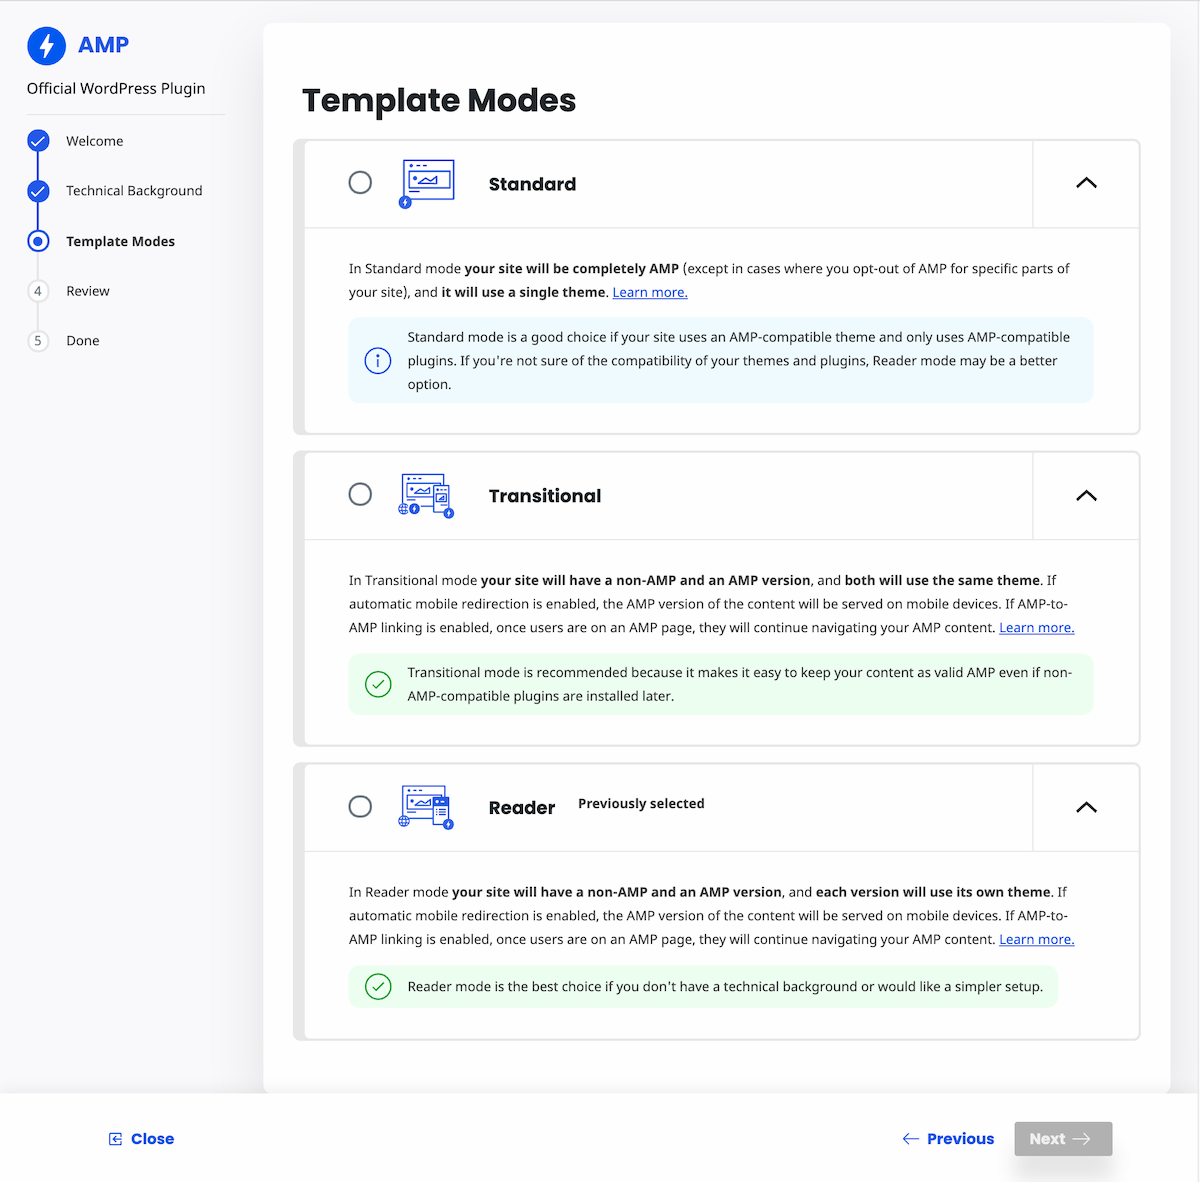 , AMP Plugin 2.0 Adds Onboarding Wizard and Expanded Reader Mode